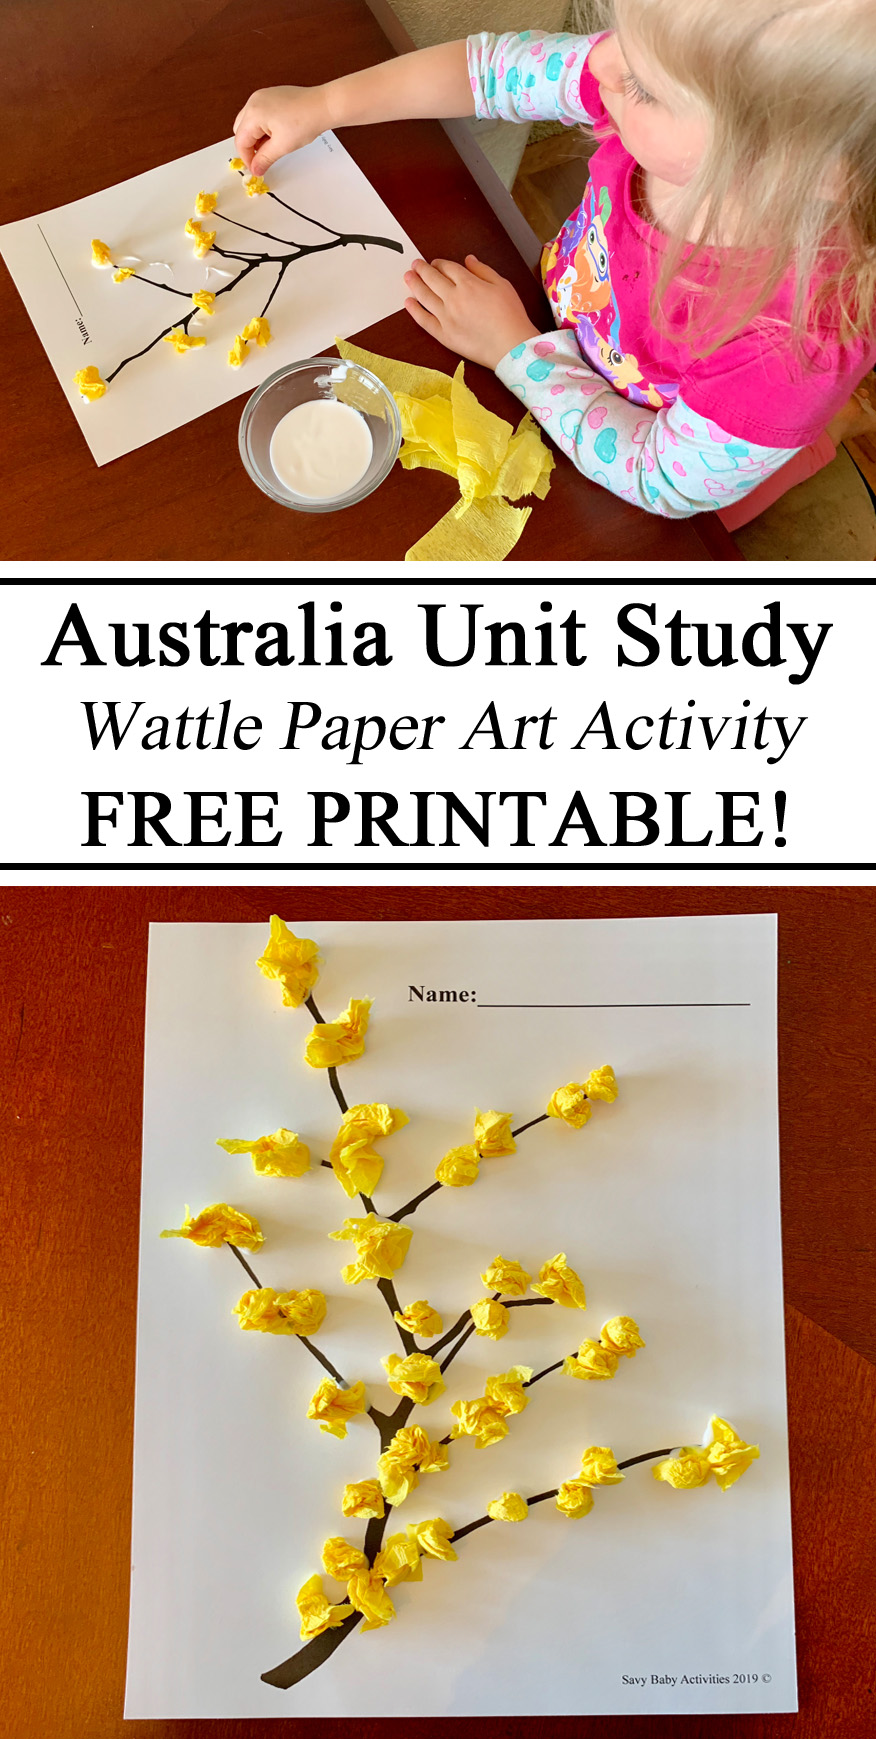 Australia Unit Study Down Under Outback Wattle National Flower Paper Craft Art Tissue Paper Preschool Kindergarten Learning Activity Montessori Waldorf Homeschool Homeschooling Ideas Teachers Moms Inspiration #travelingthroughlearning